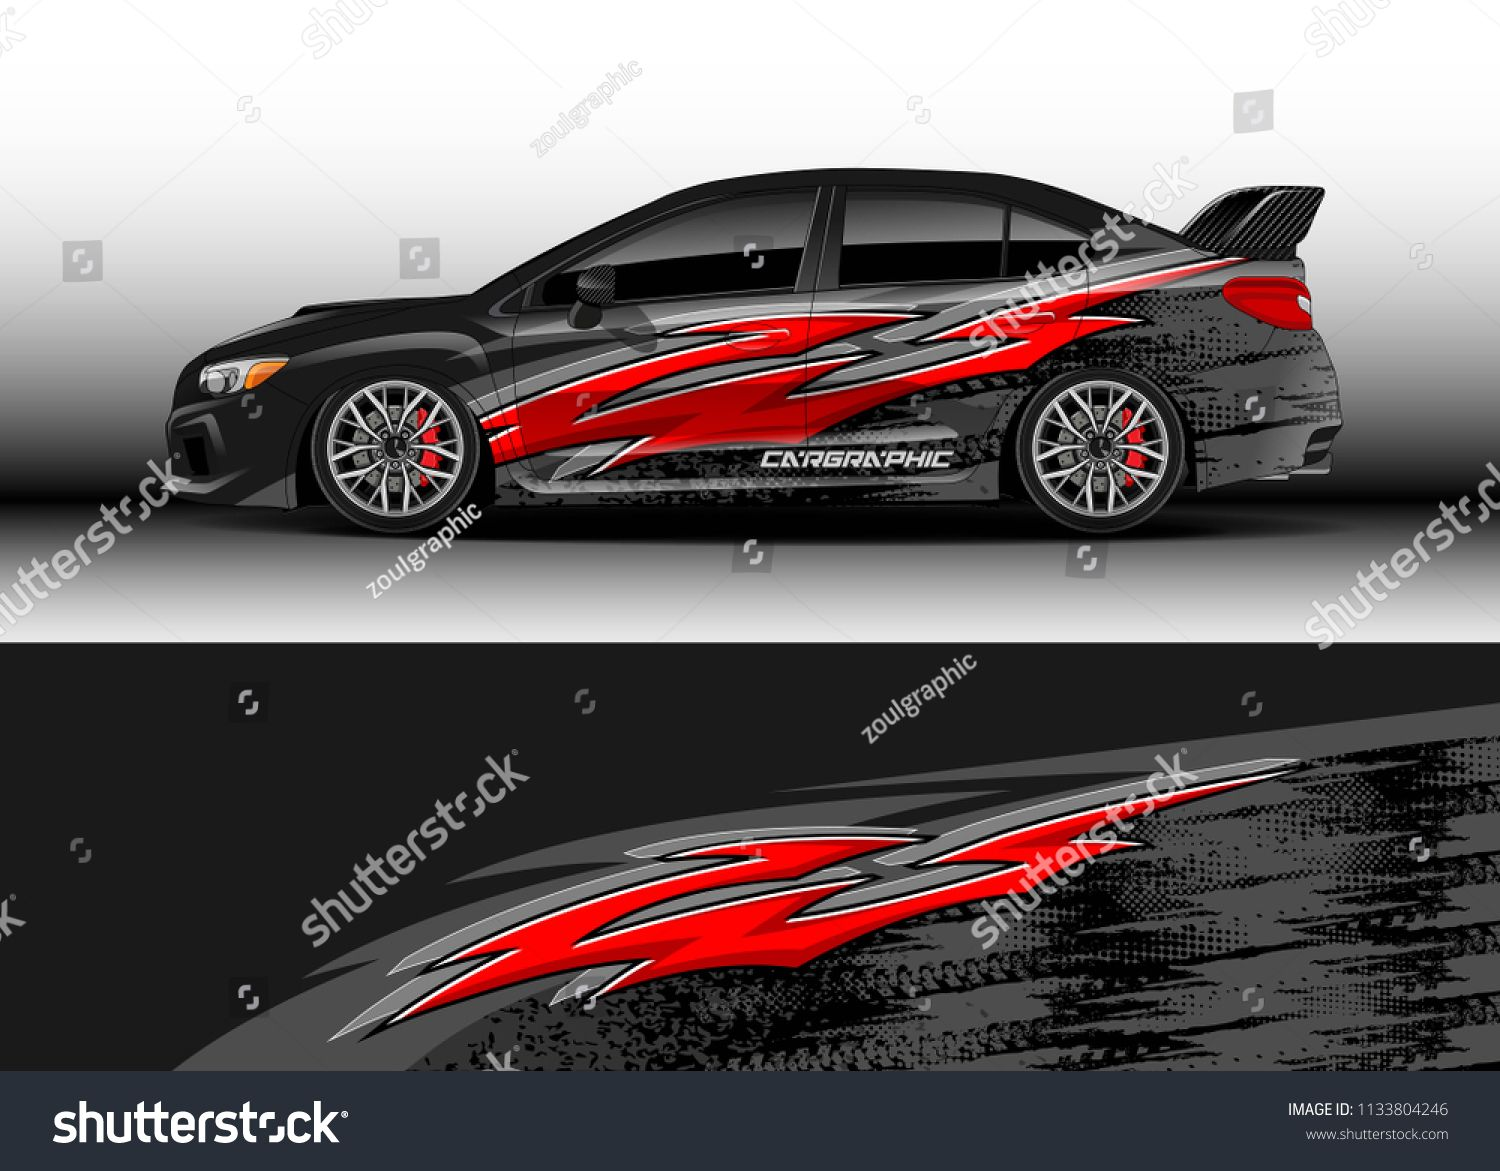 Car Decal Graphic Vector Wrap Vinyl Sticker Graphic Abstract